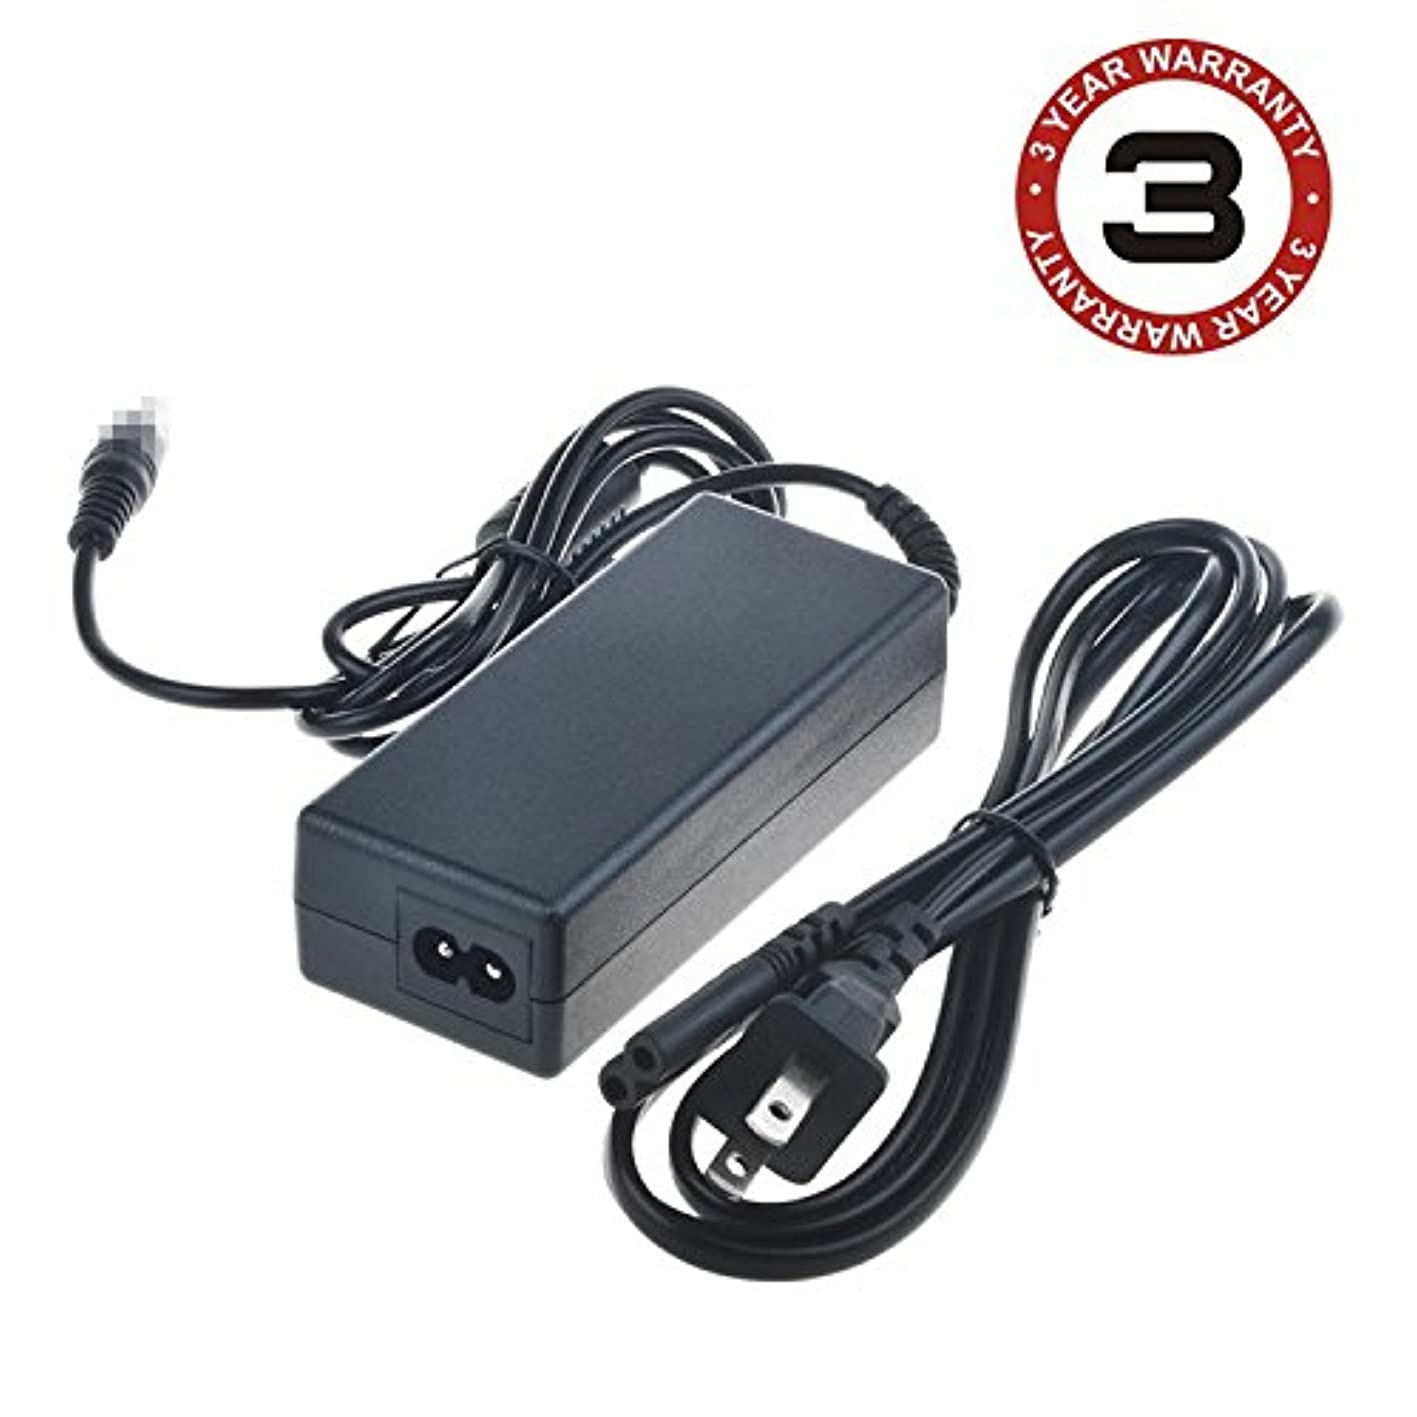 SLLEA AC/DC Adapter for Broksonic CCVG1440 LCD TV/DVD Combo Power Adapter AC/DC Charger Supply Cord Plug mocrqdmjdwo155